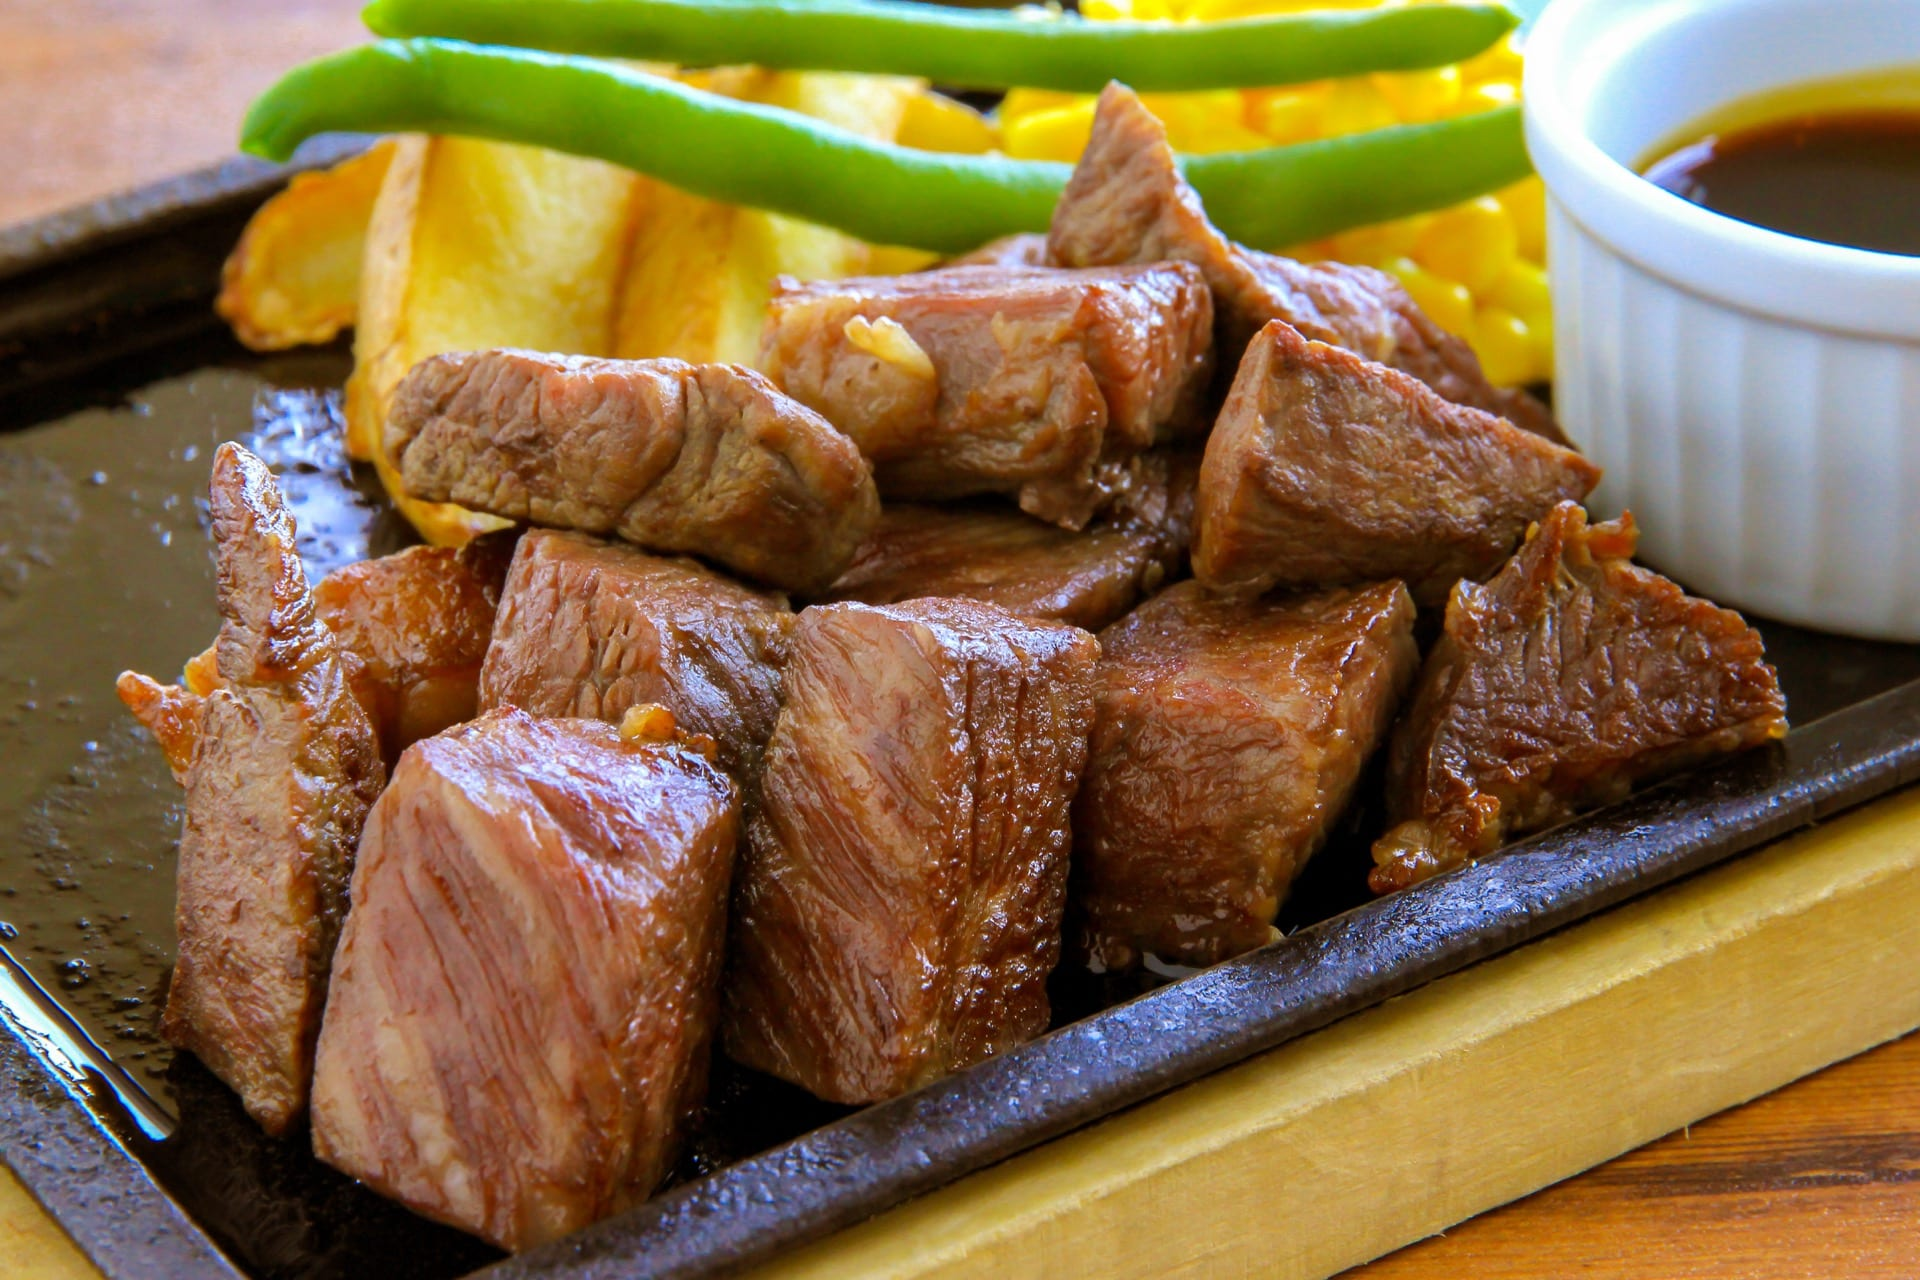 WA Foods diced cooked steak